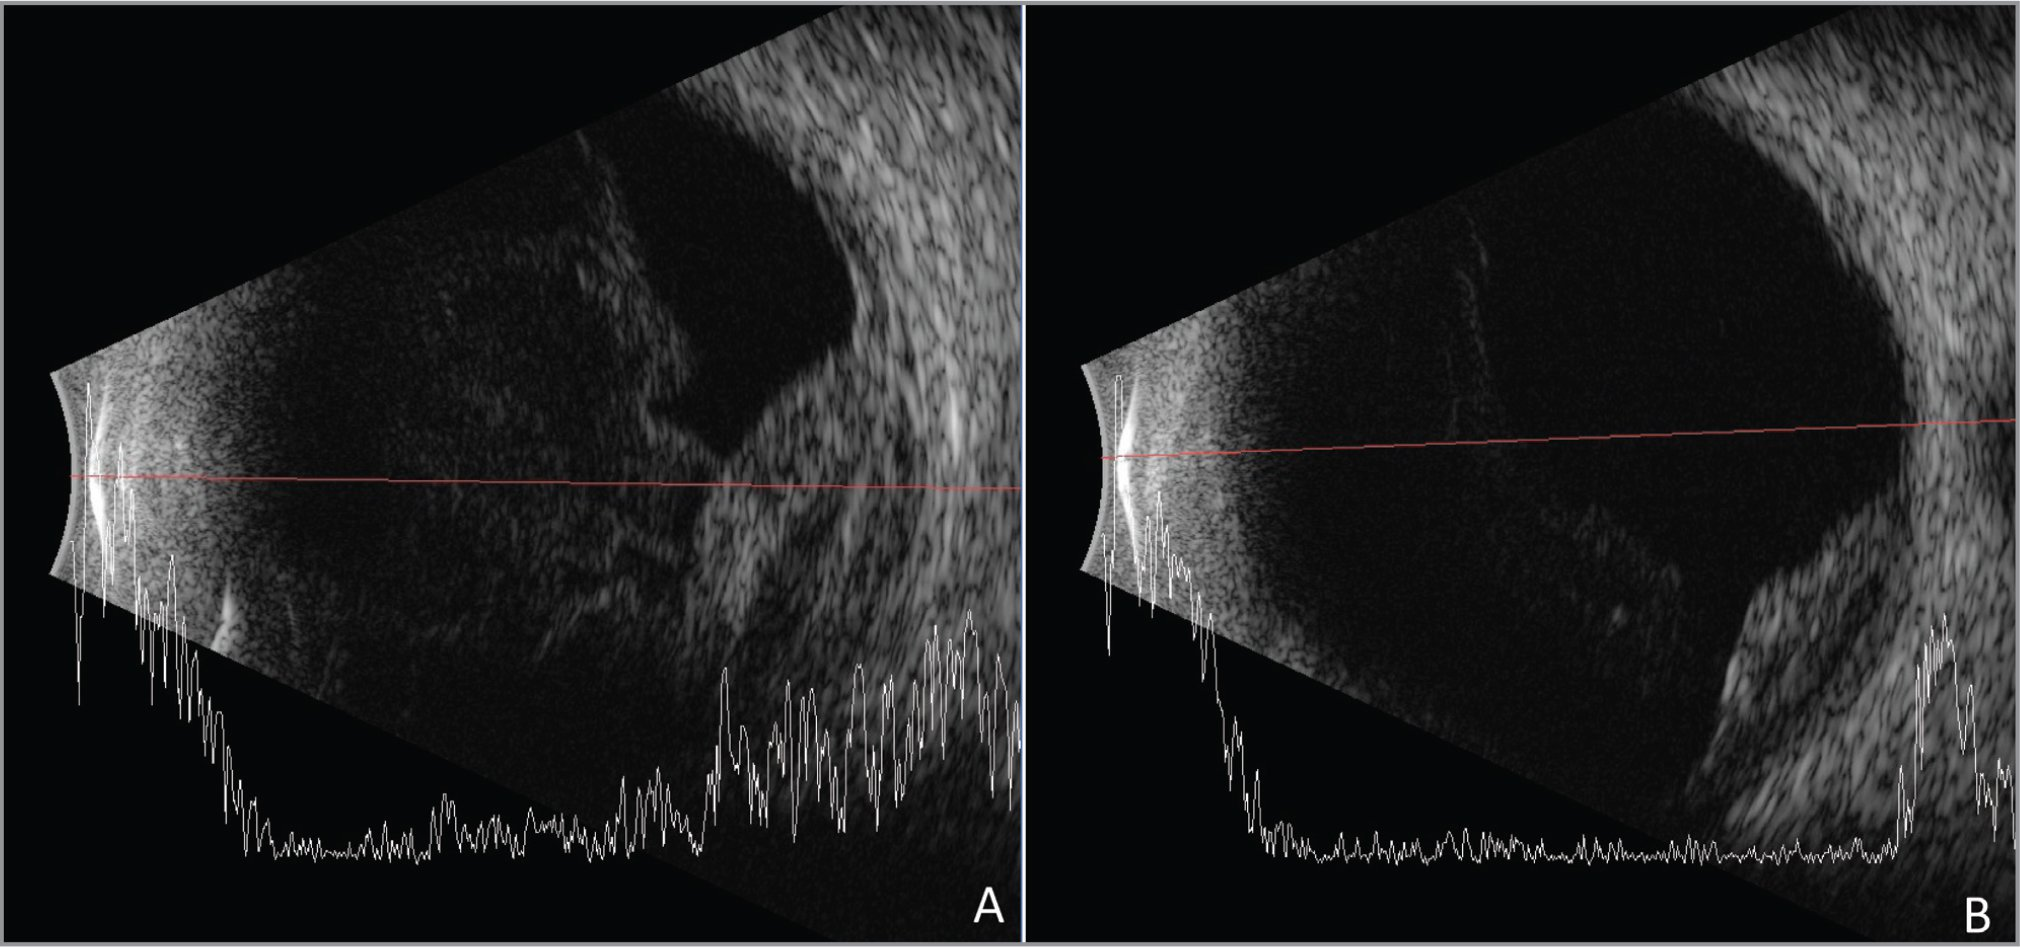 (A) An 87-year-old male on warfarin and aspirin presented with painful vision loss after an episode of uncontrollable coughing. The funduscopic exam was limited due to vitreous hemorrhage. On ultrasonography, a dome-shaped lesion with medium, variable internal reflectivity consistent with suprachoroidal hemorrhage (SCH) was noted. (B) Four weeks later, the SCH had decreased in size, which was confirmed with B-scan ultrasonography.